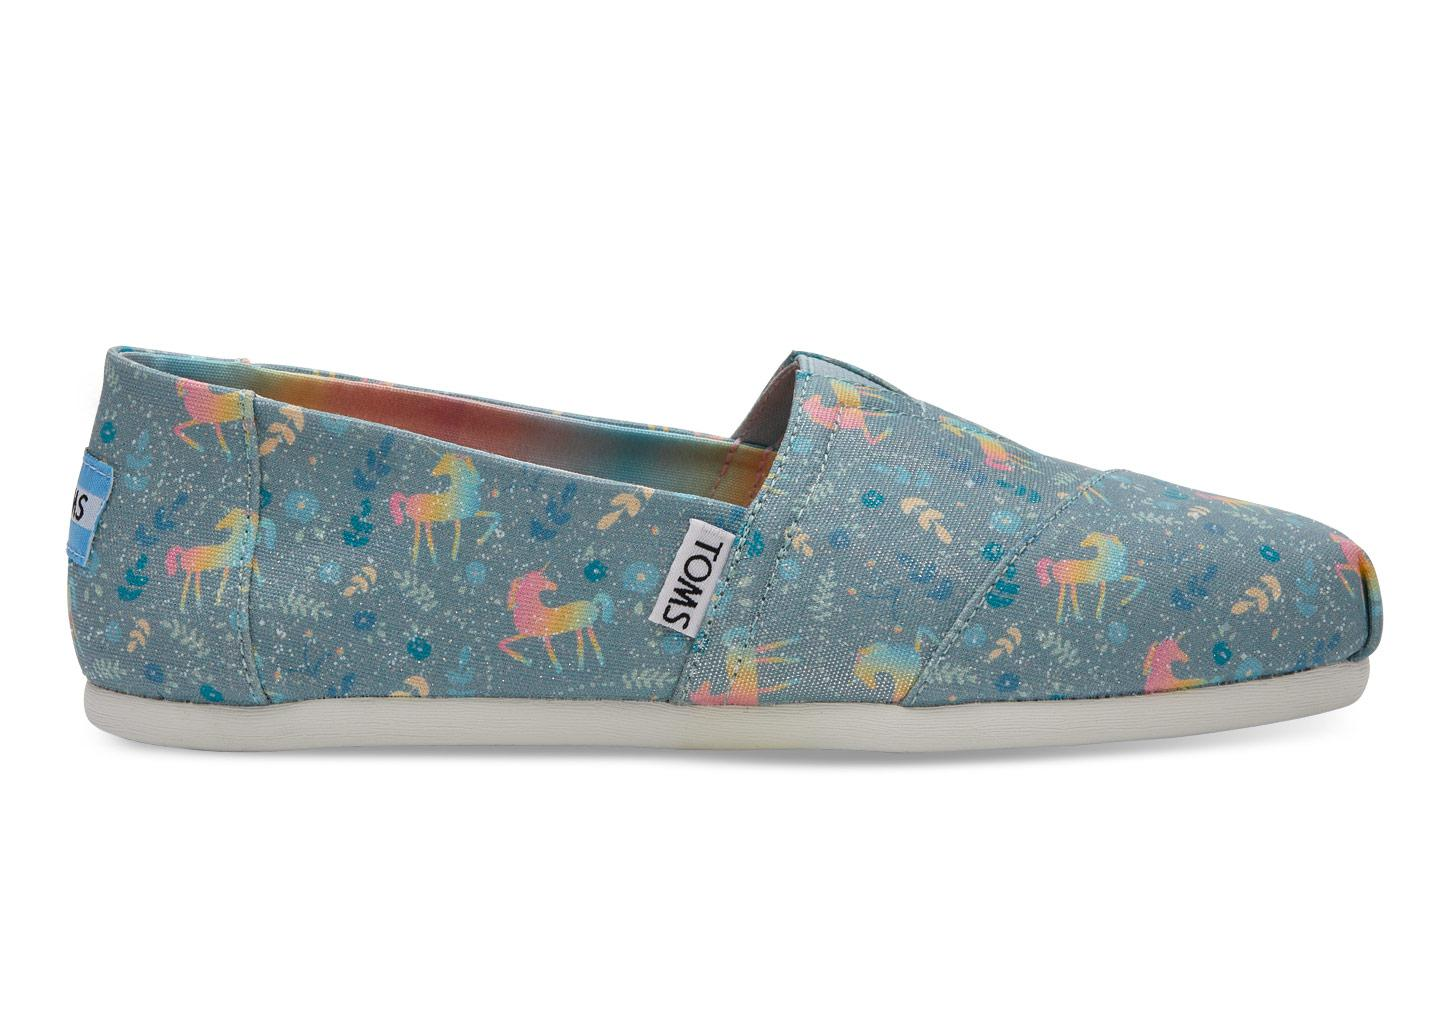 Toms Shoes New York